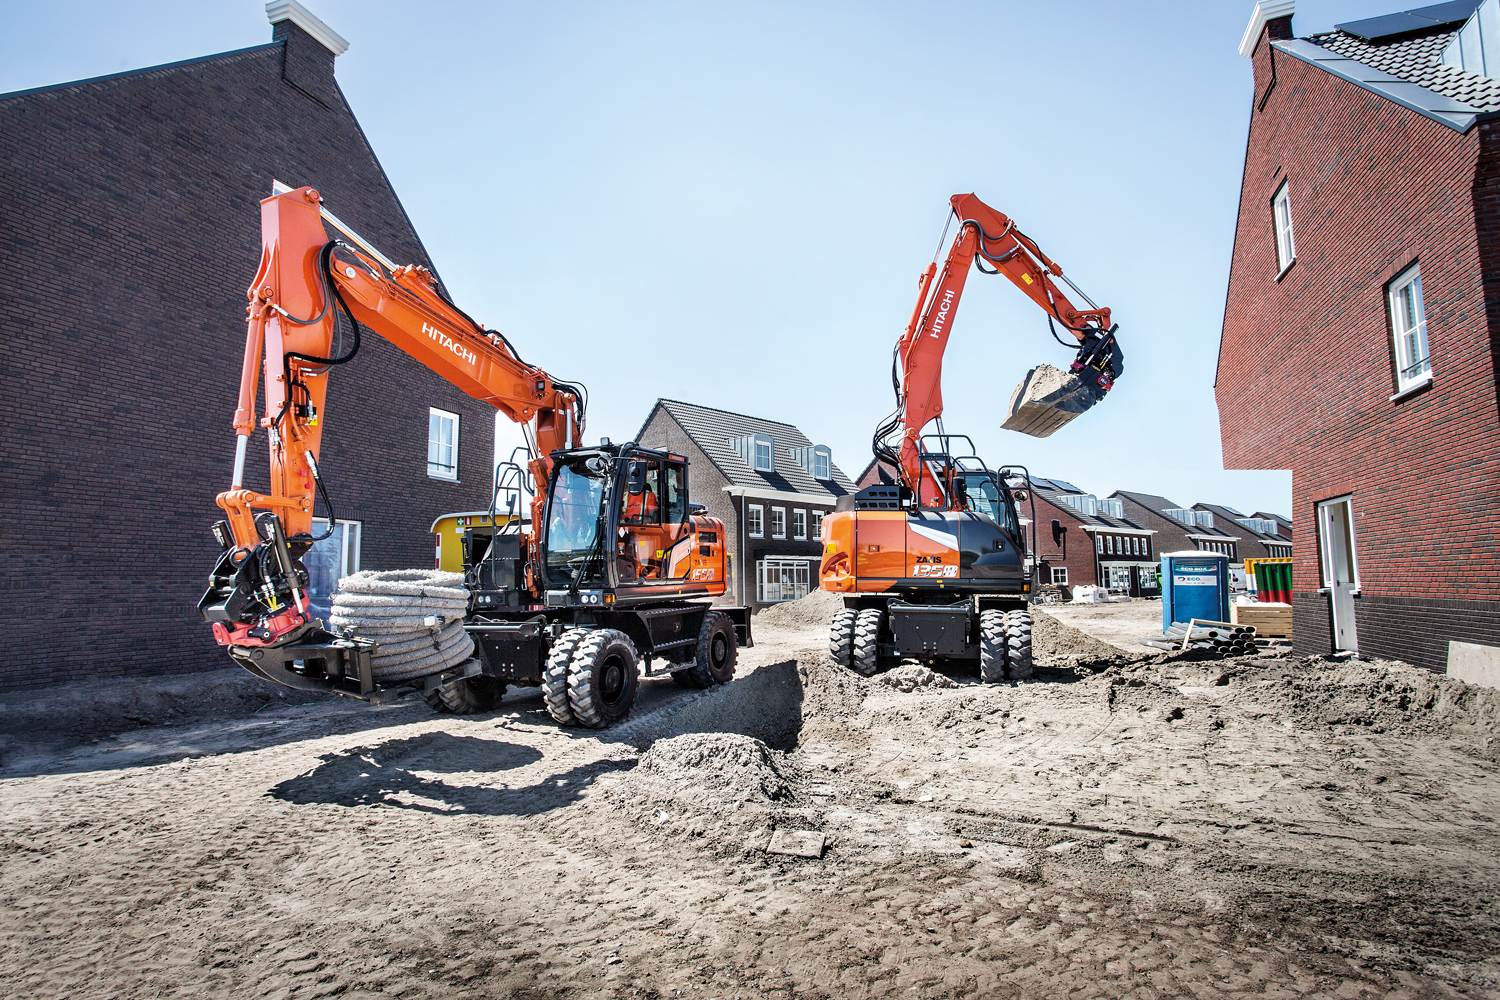 Create your vision with the new Hitachi Zaxis-7 wheeled excavator range